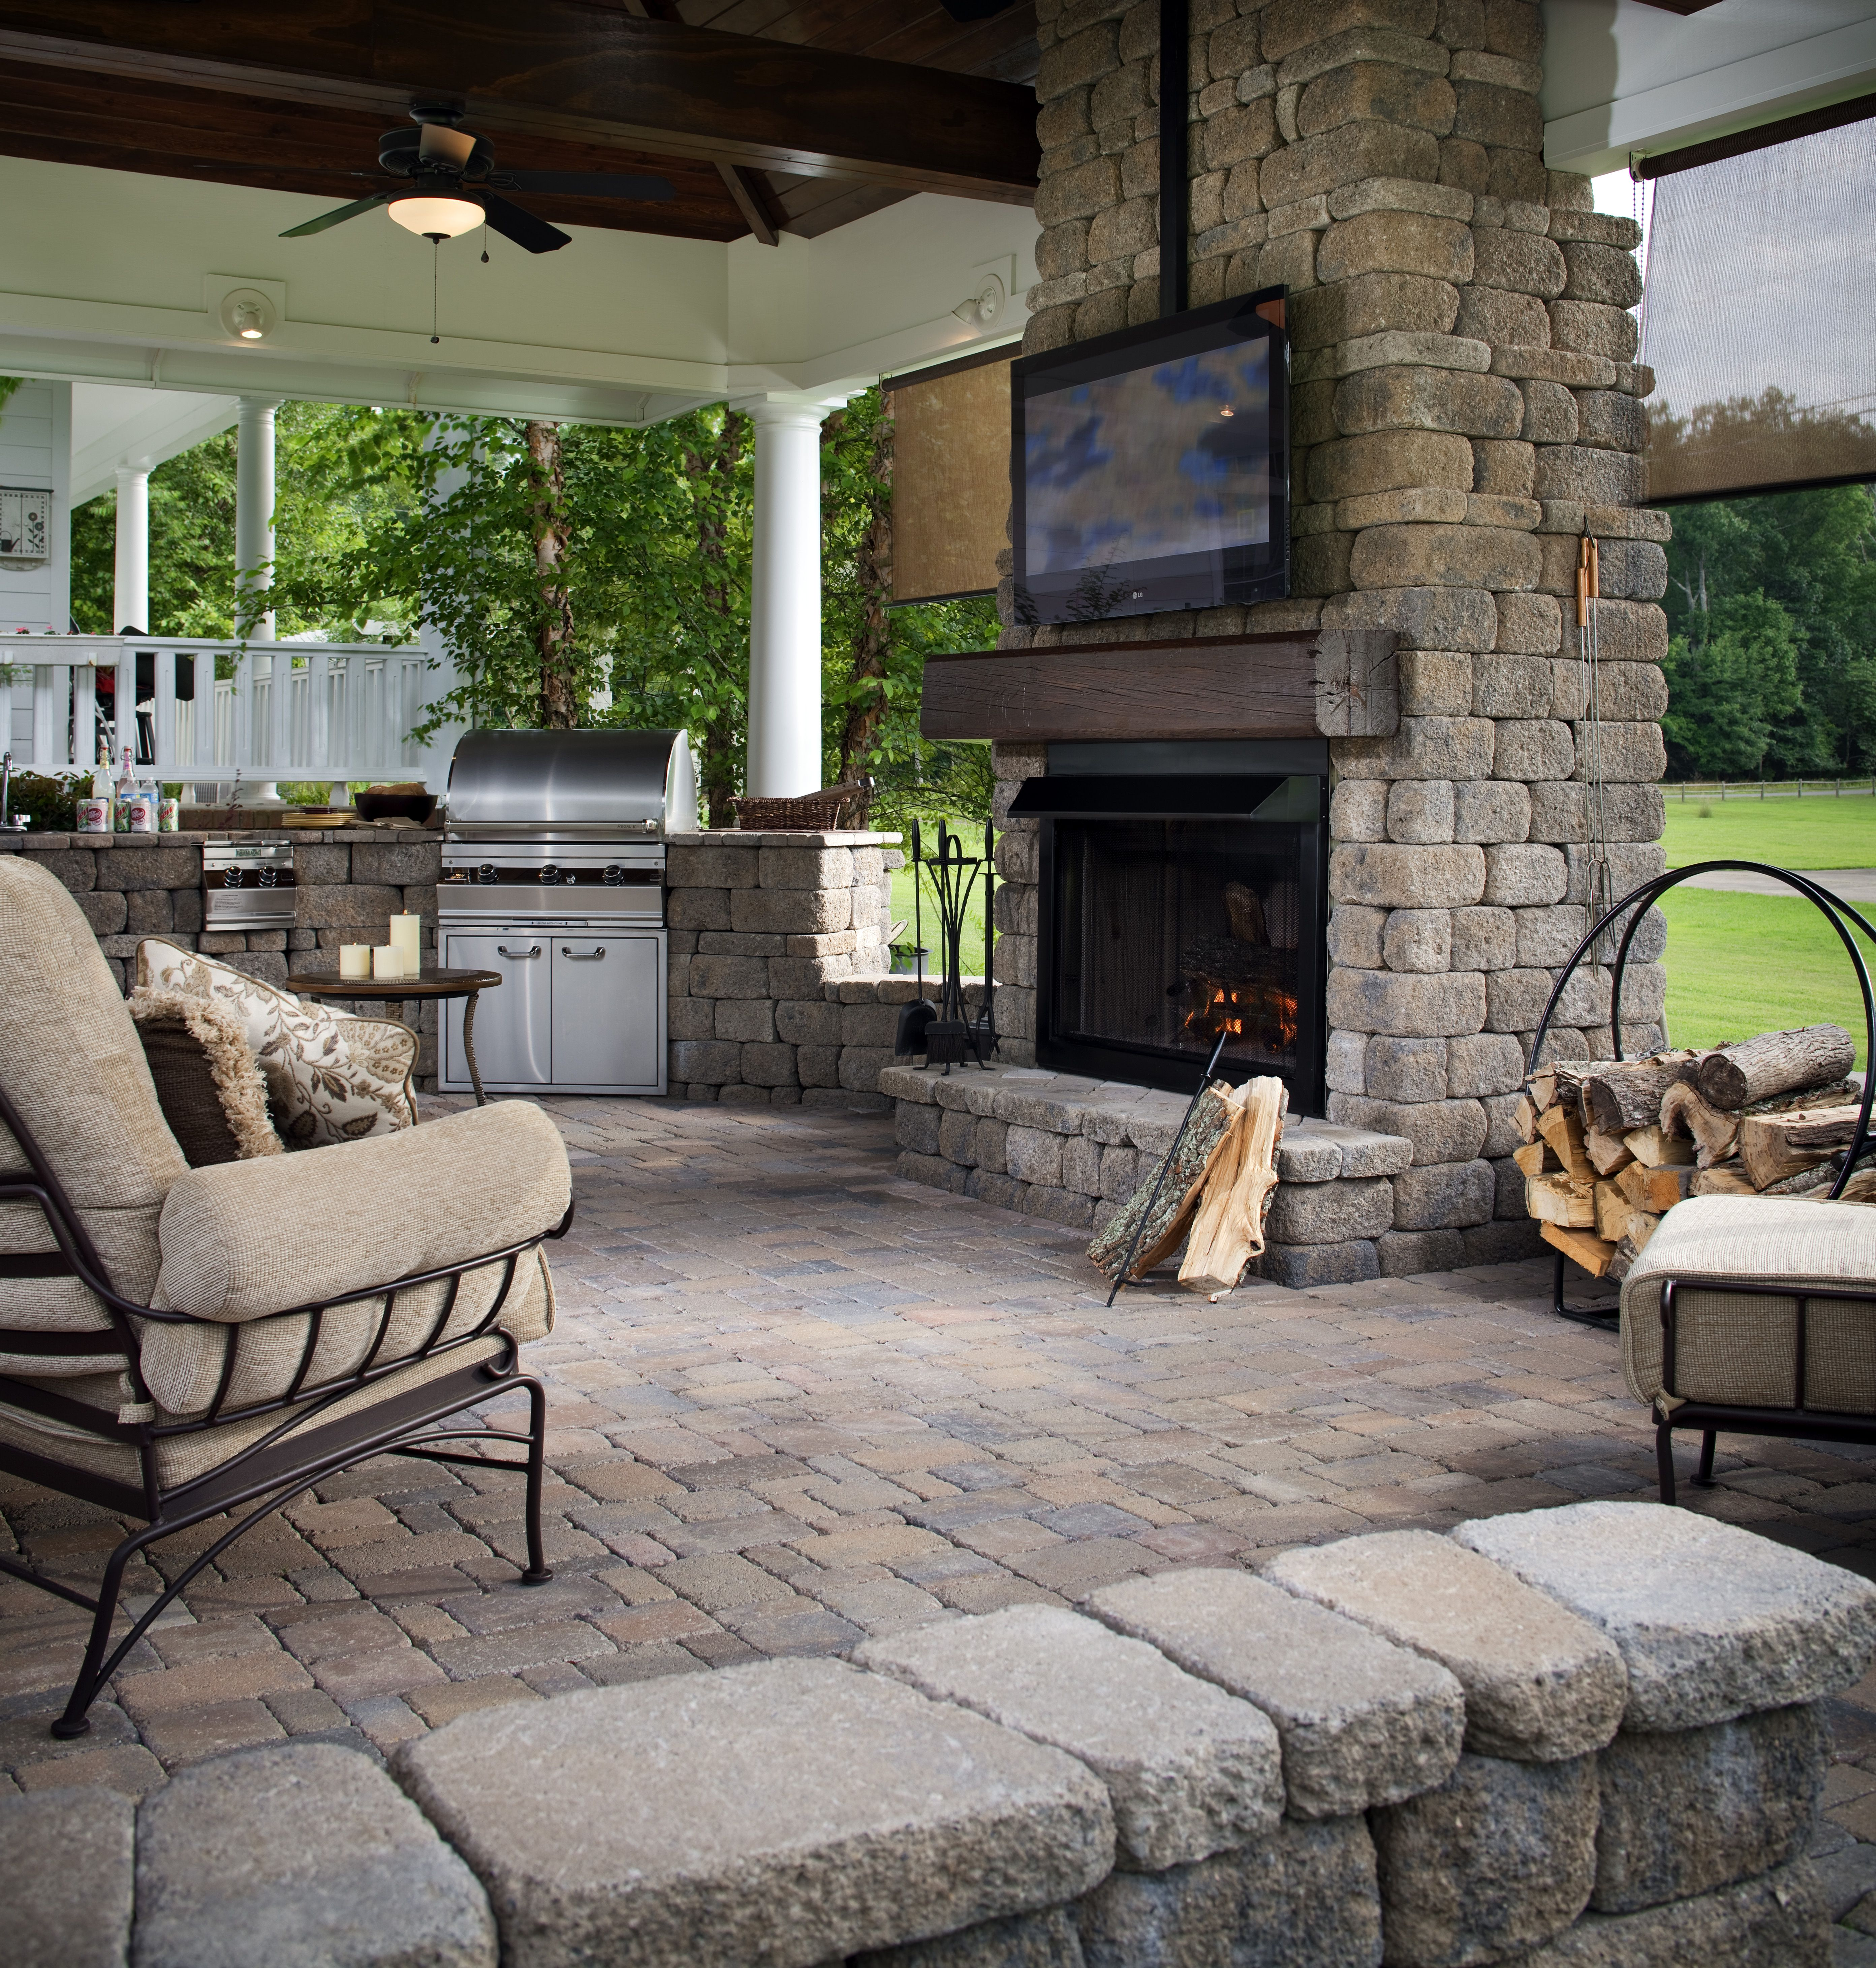 Covered Backyard Space Designs: Beautiful Keystone Country Manor Outdoor Fireplace